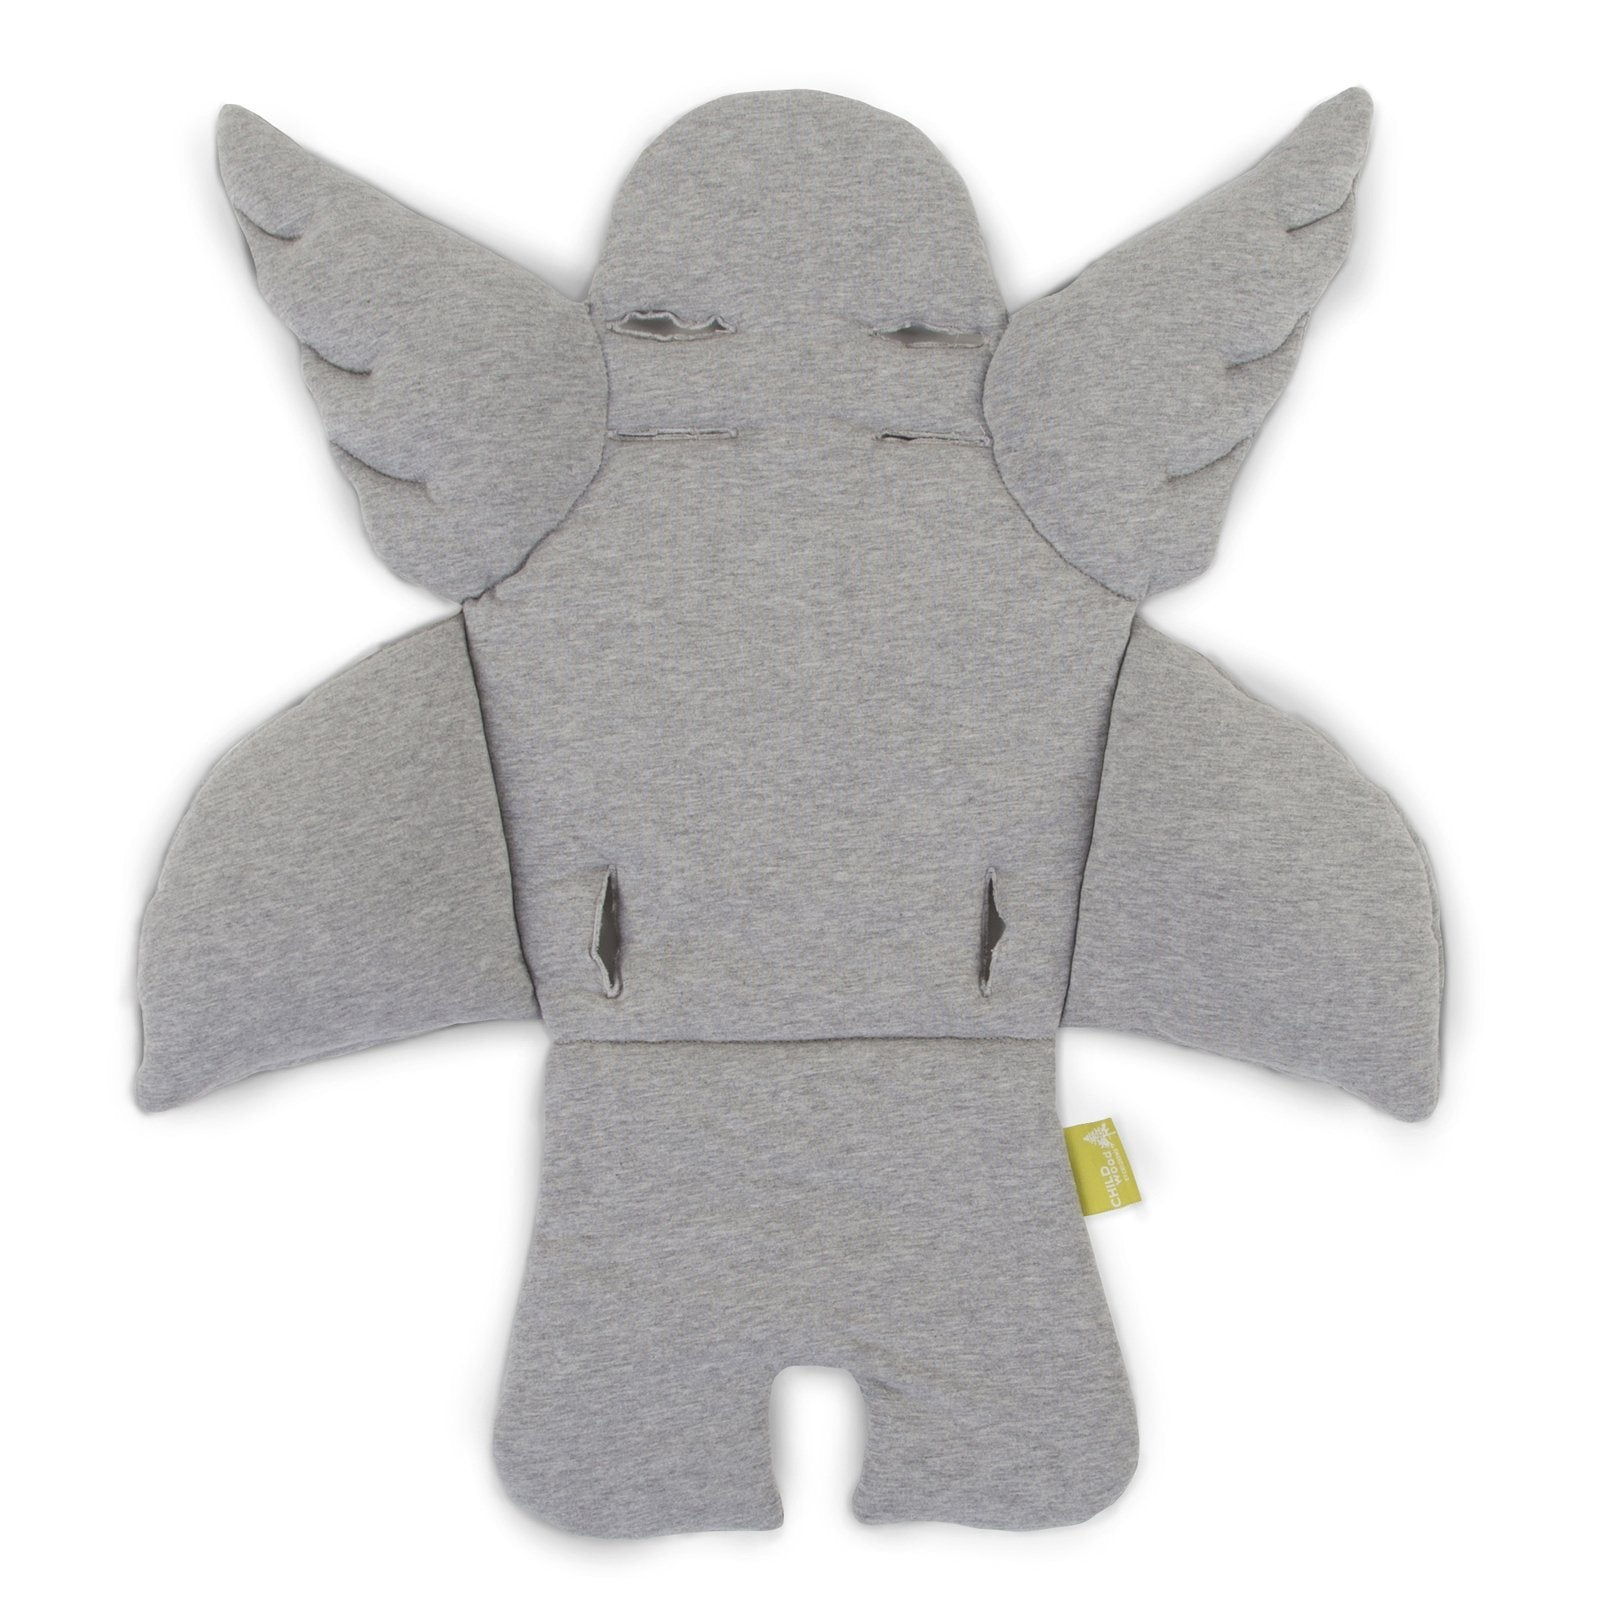 Angel Universal Seat Cushion - Grey Child Home